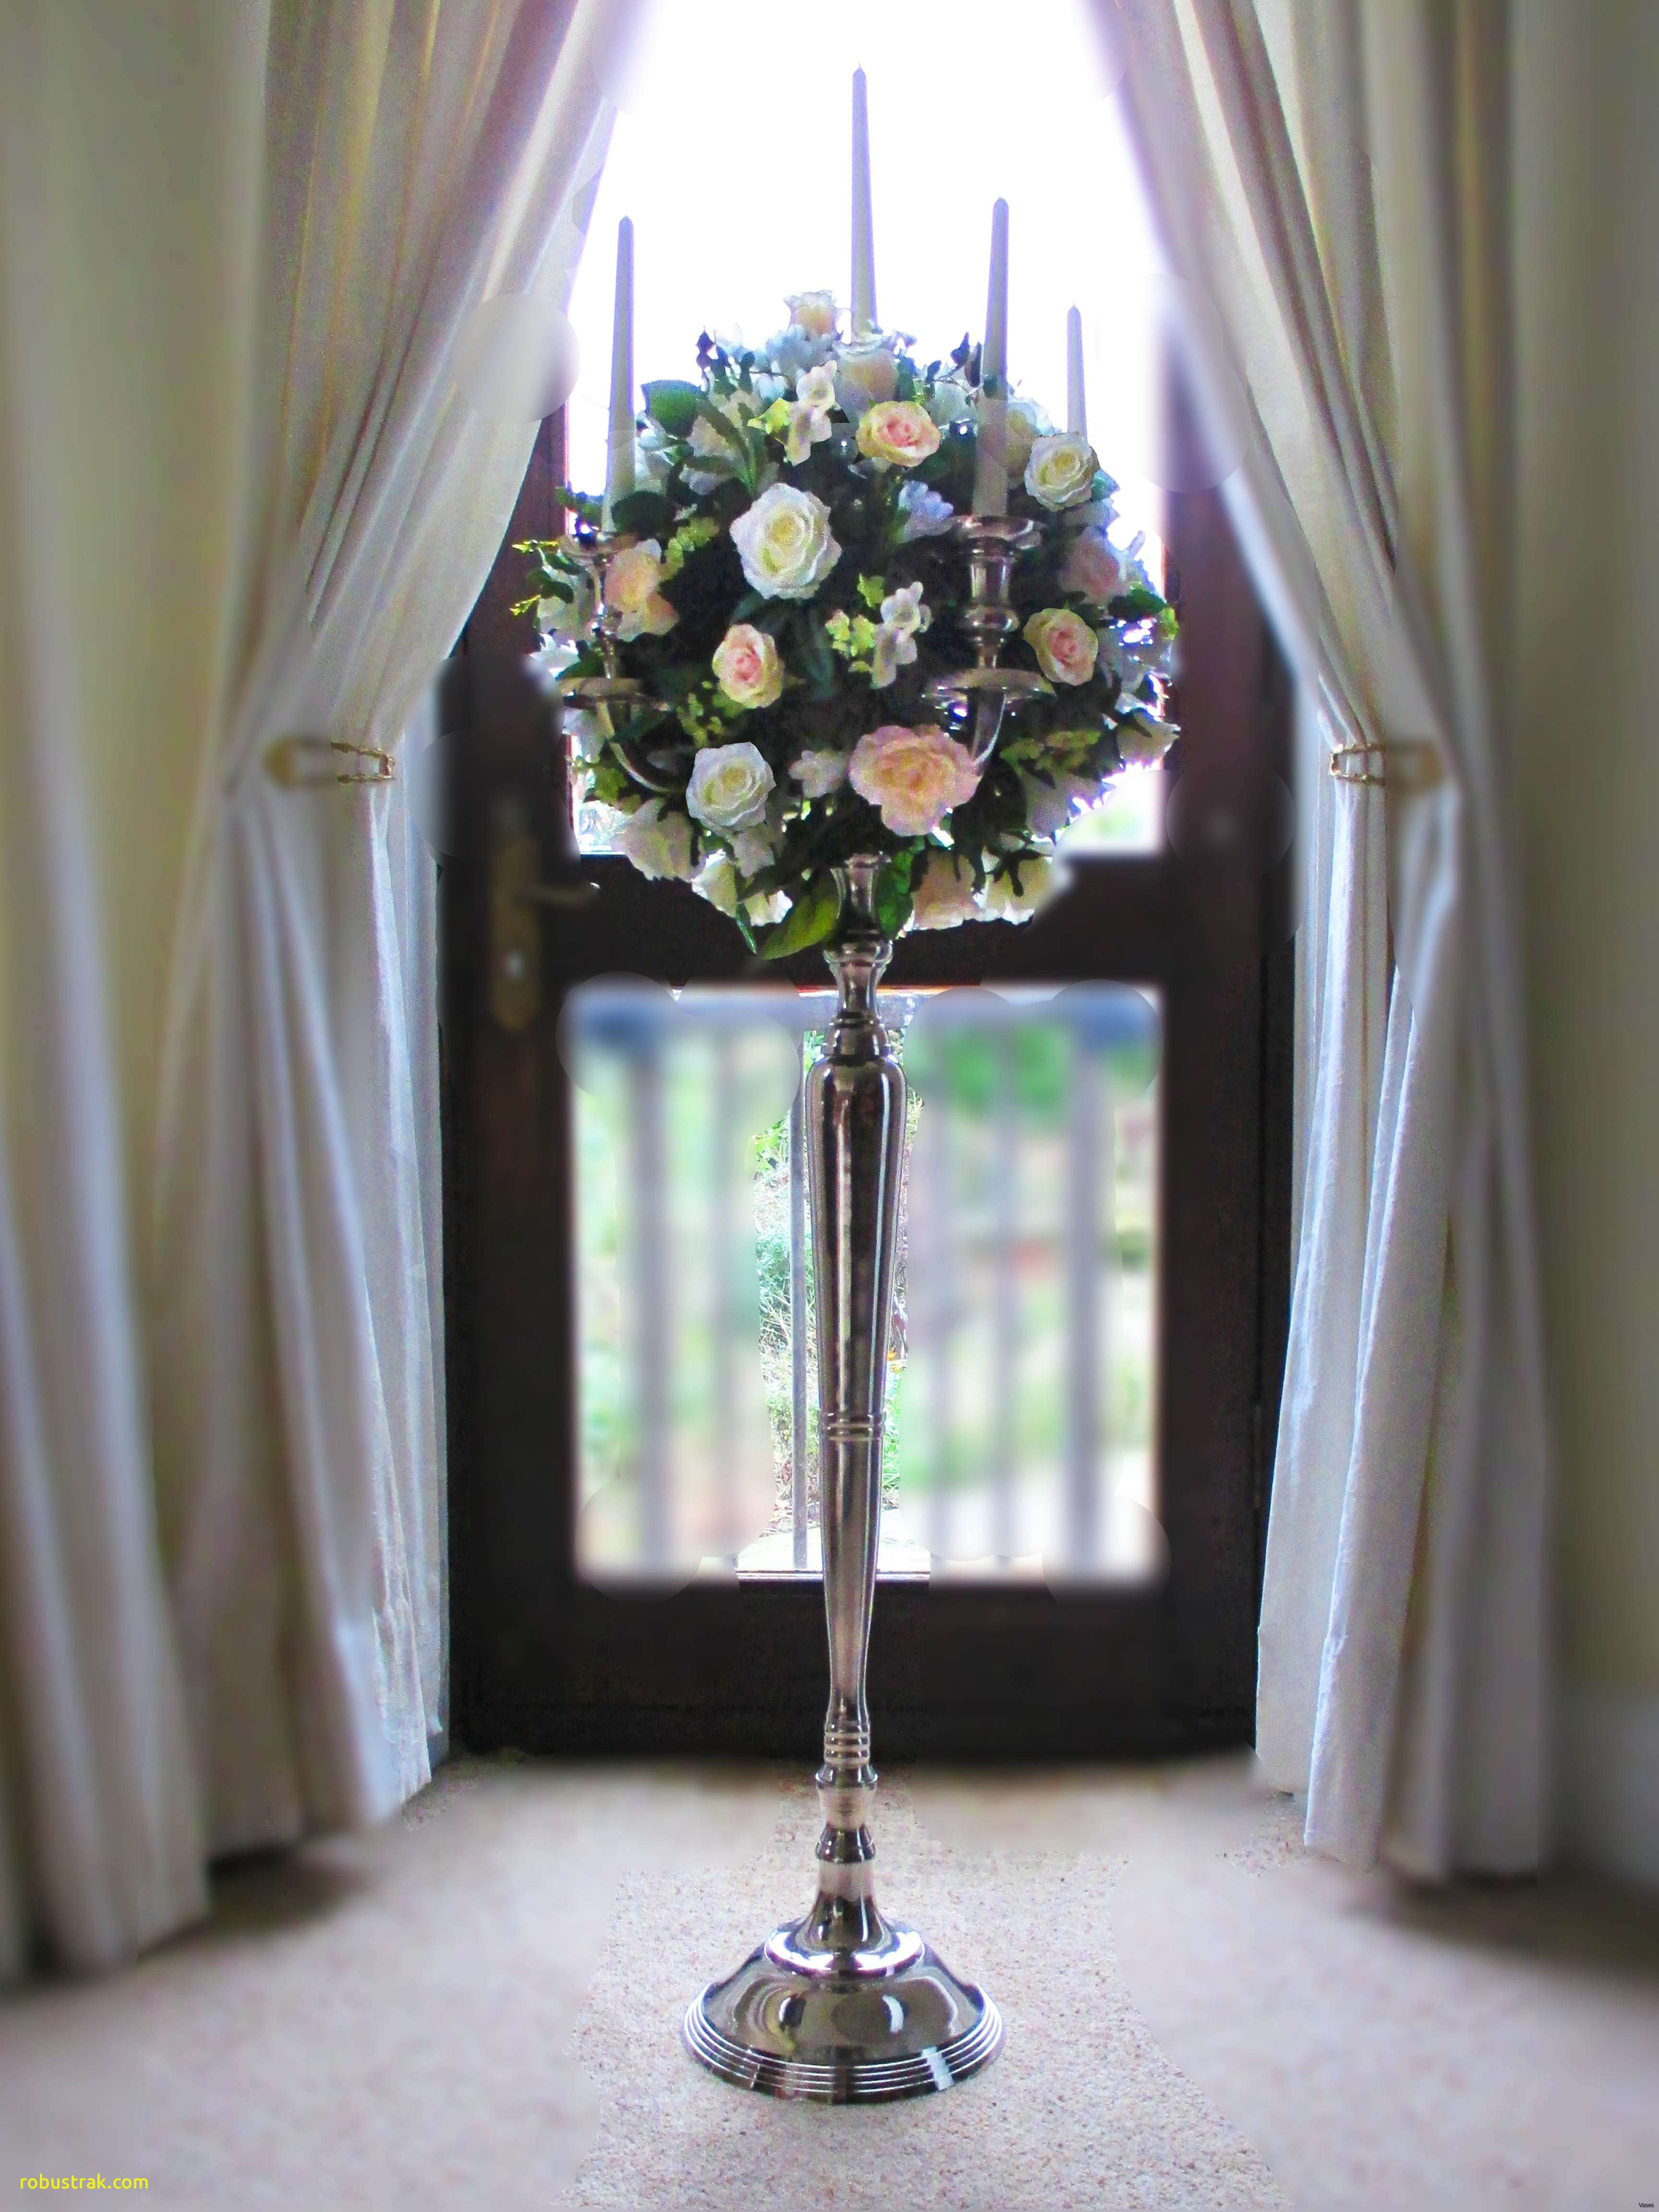 black glass vases wholesale of inspirational wedding decorations silver home design ideas in cheap wedding bouquets packages 5397h vases silver vase leeds i 0d scheme floral wedding bouquets